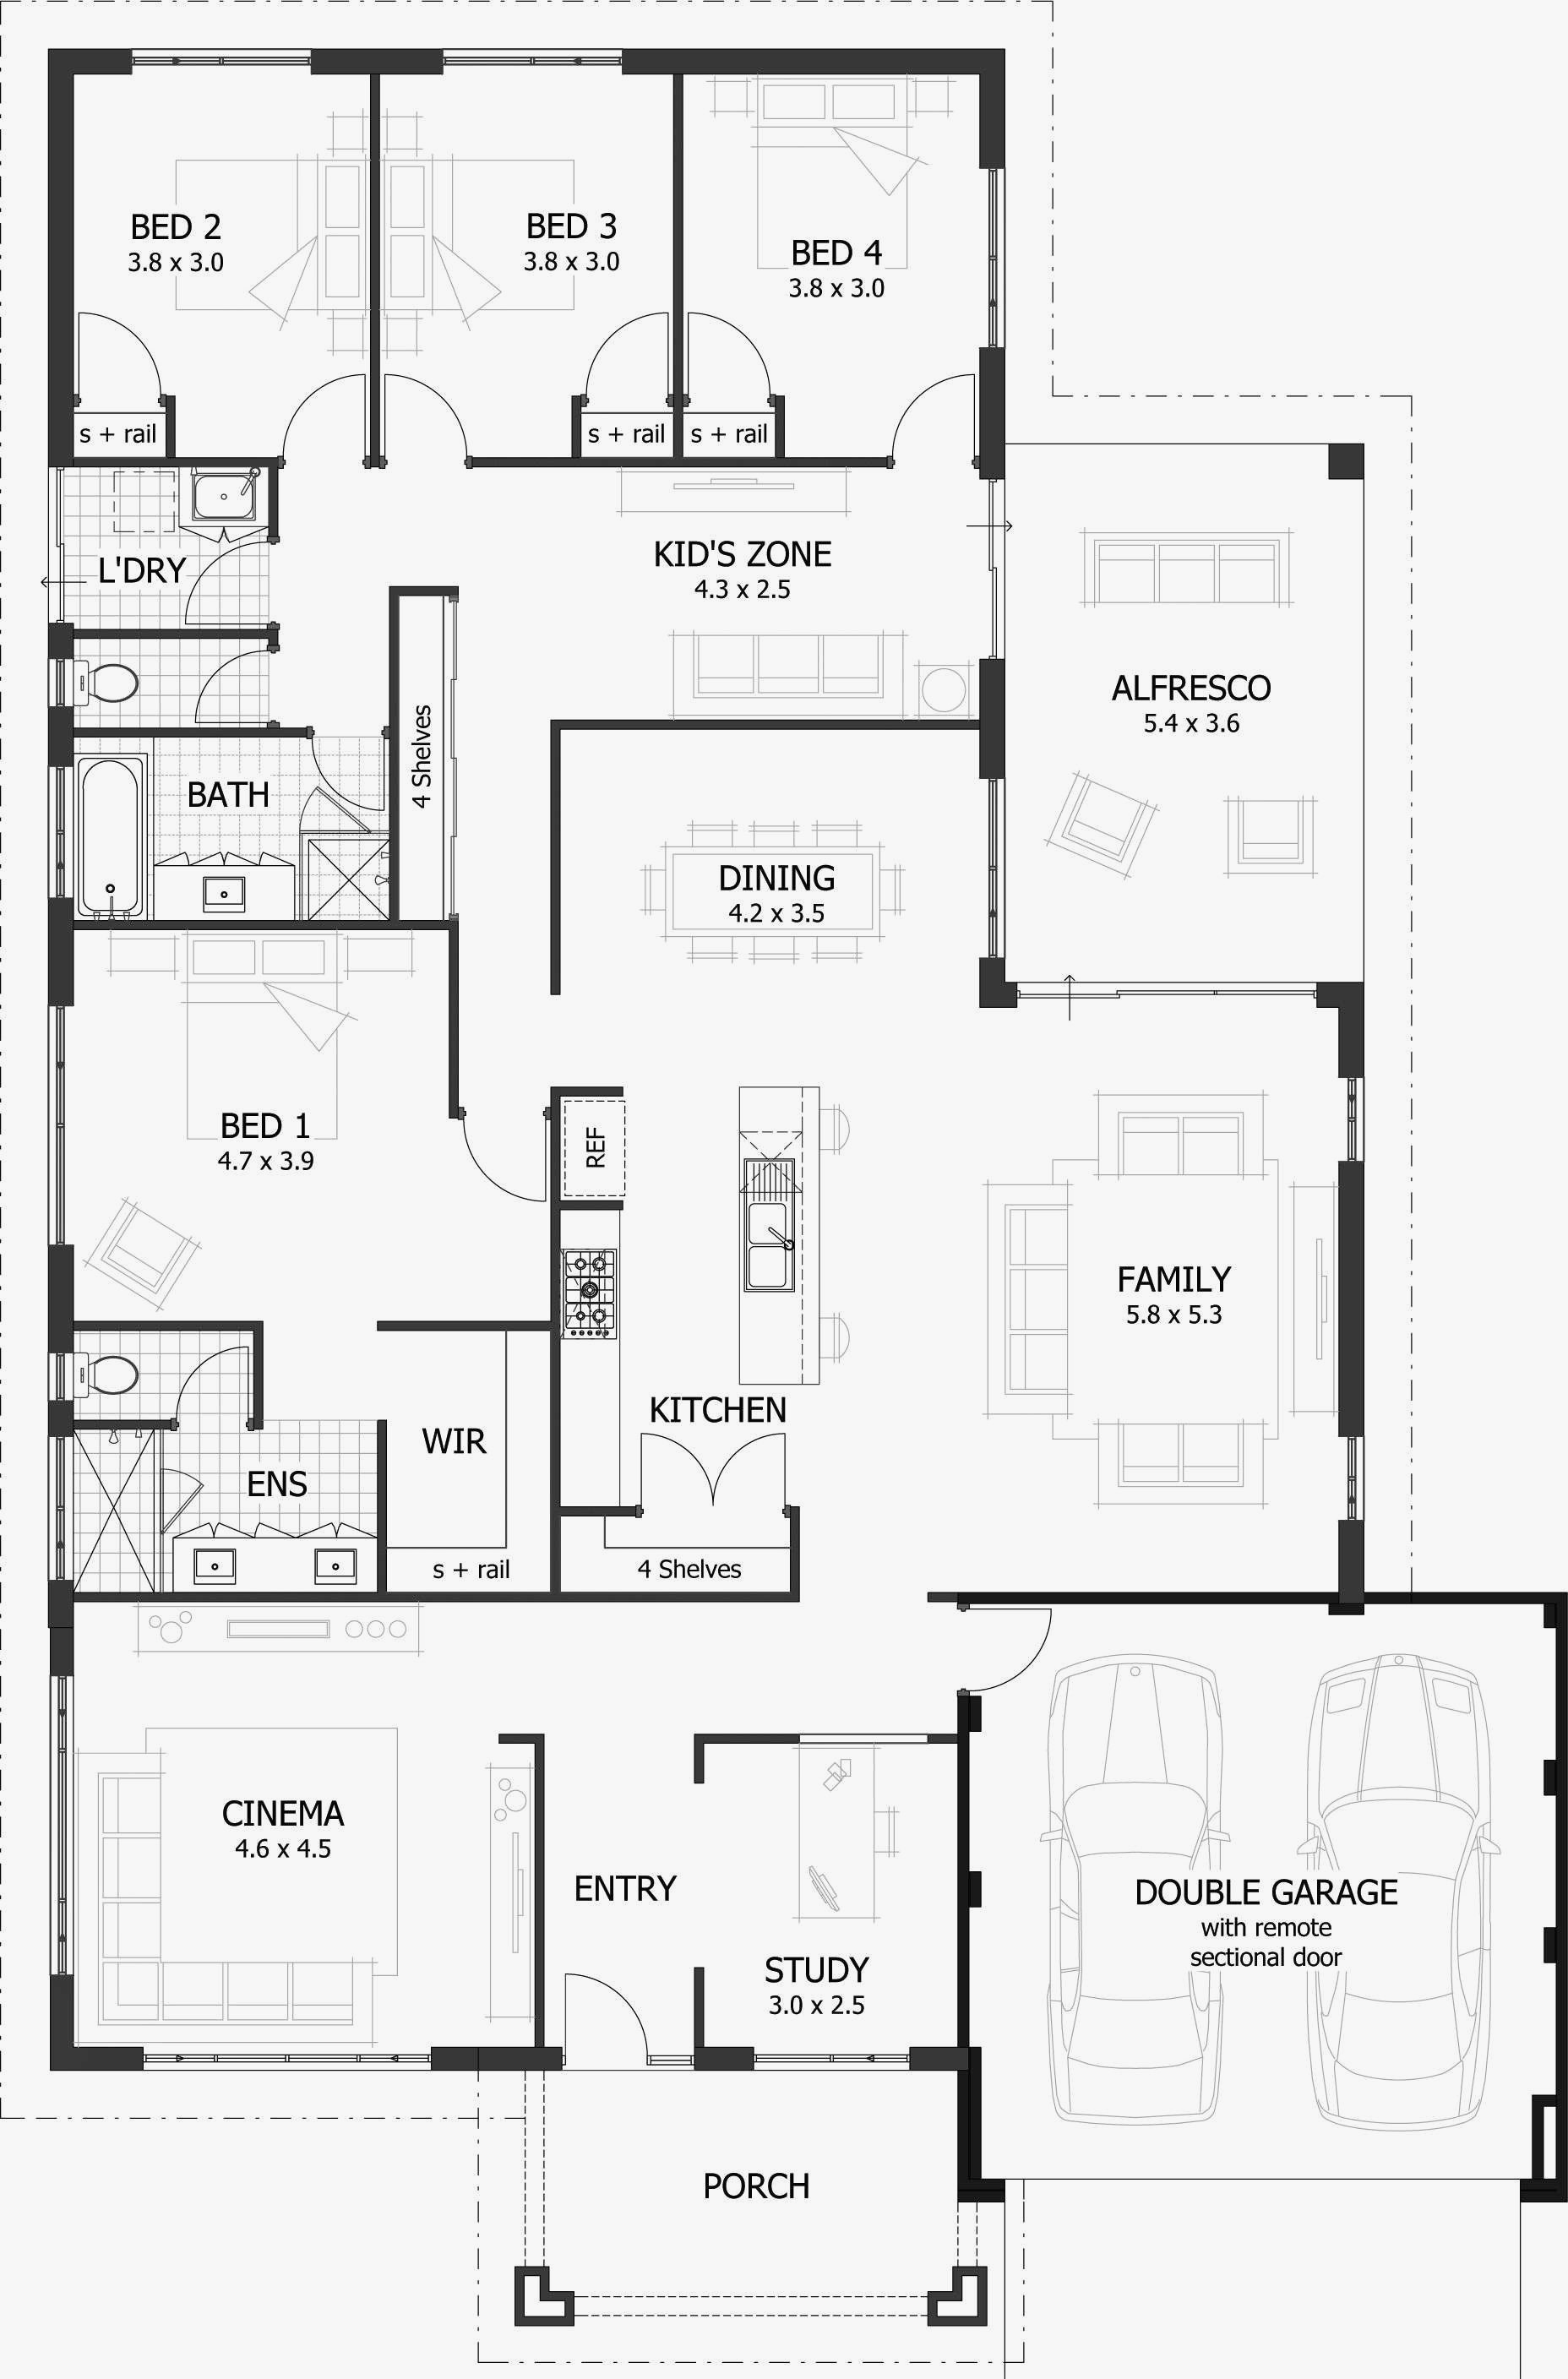 cheap guest house plans inspirational house plans with detached guest suite cheap 4 bedroom house plans and home designs cottage house of cheap guest house plans